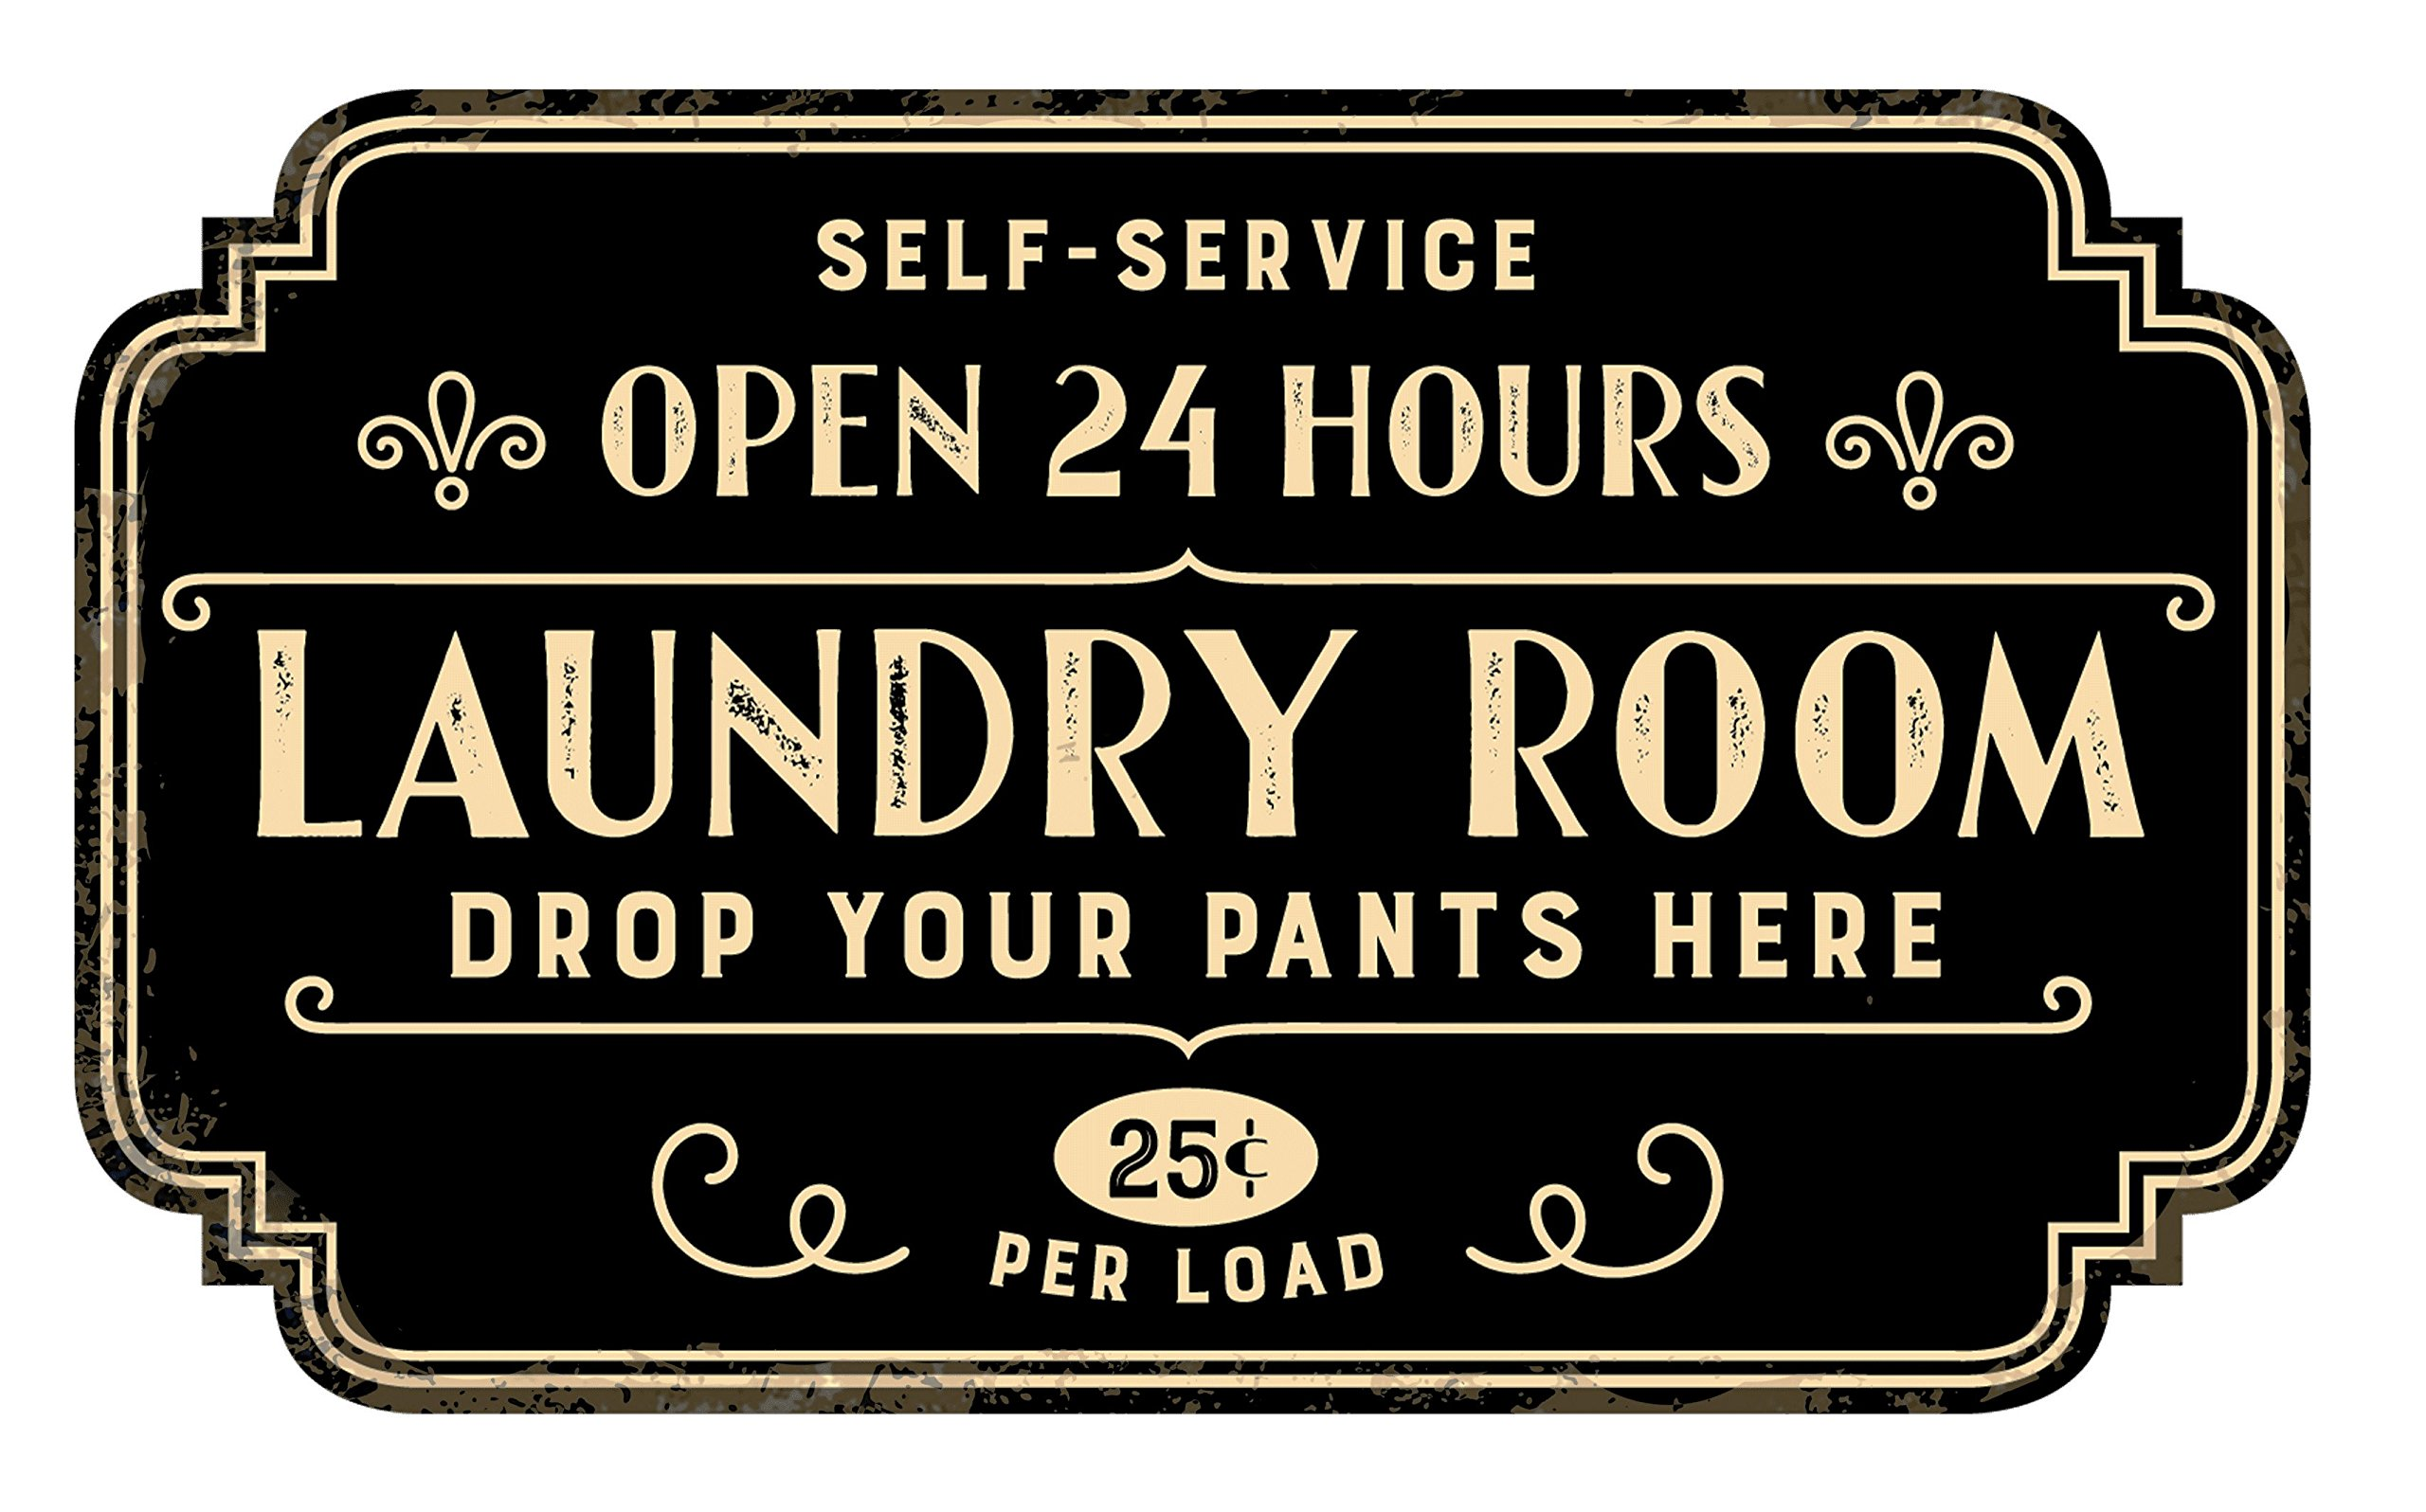 Zazzy Signs Rustic Laundry Room Wall Decor Sign - Vintage Distressed Metal - 17x13 Inch by Zazzy Signs